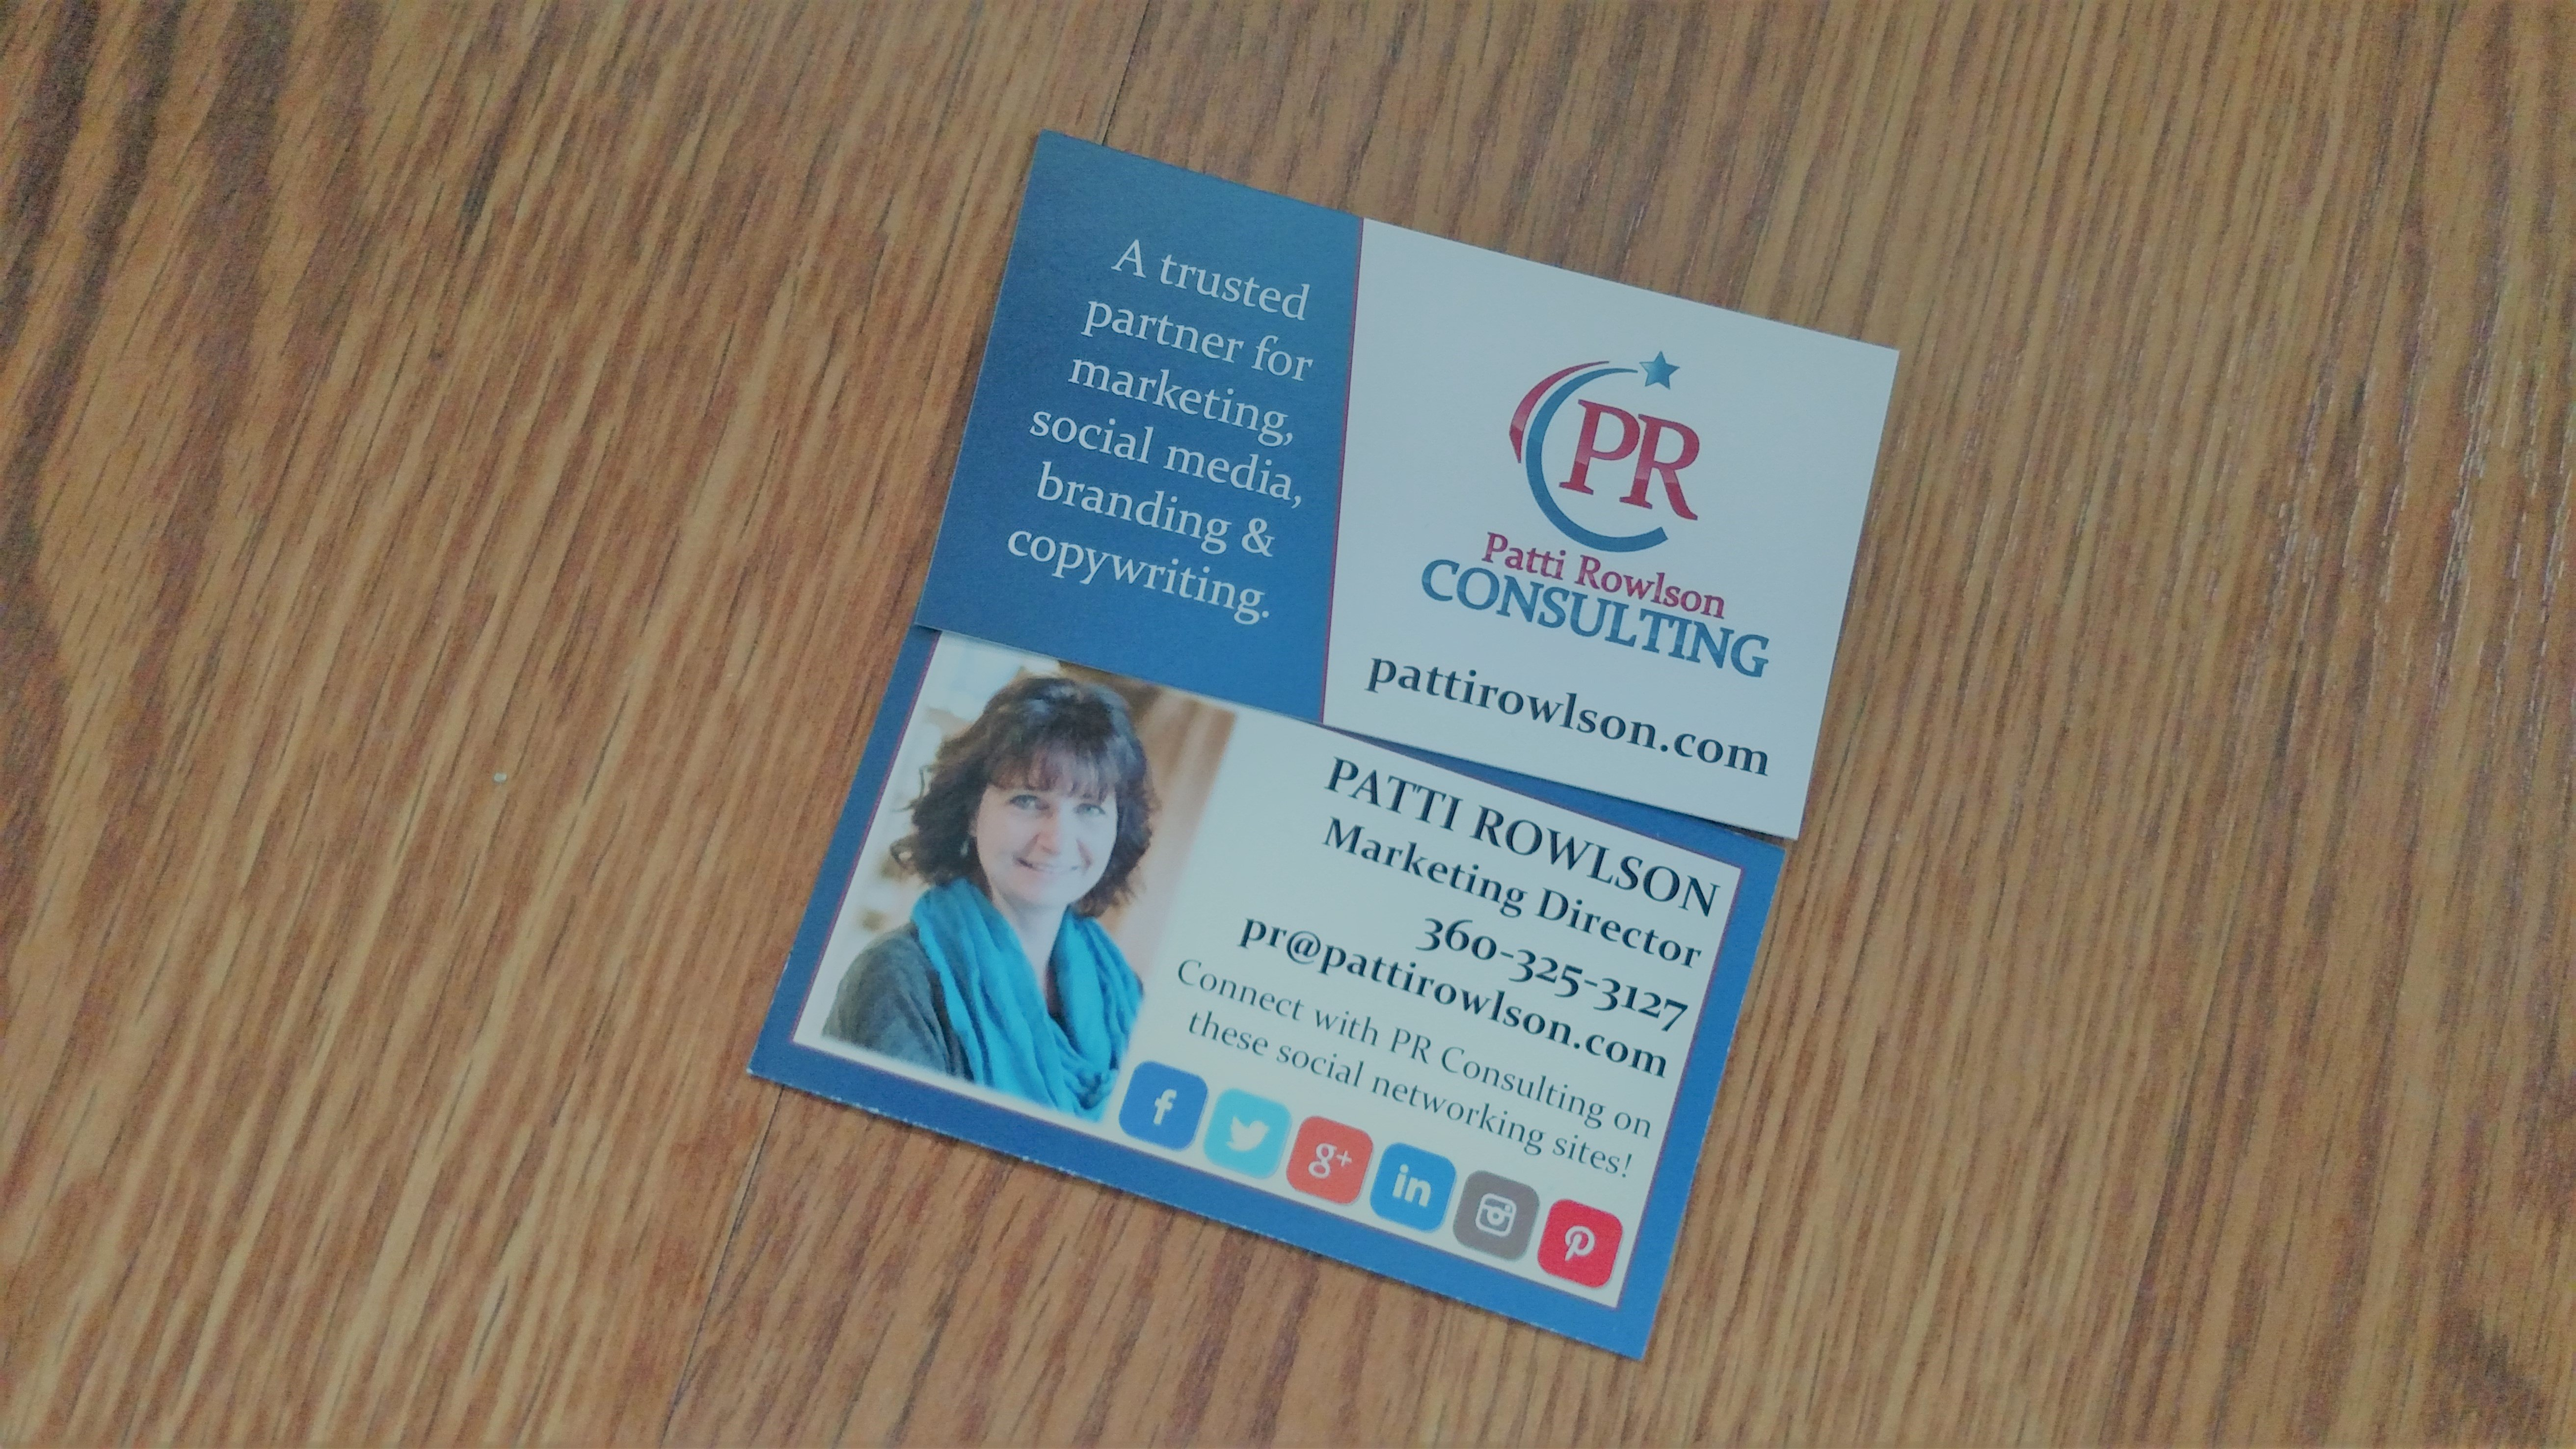 Business card for marketing firm | PR Consulting News